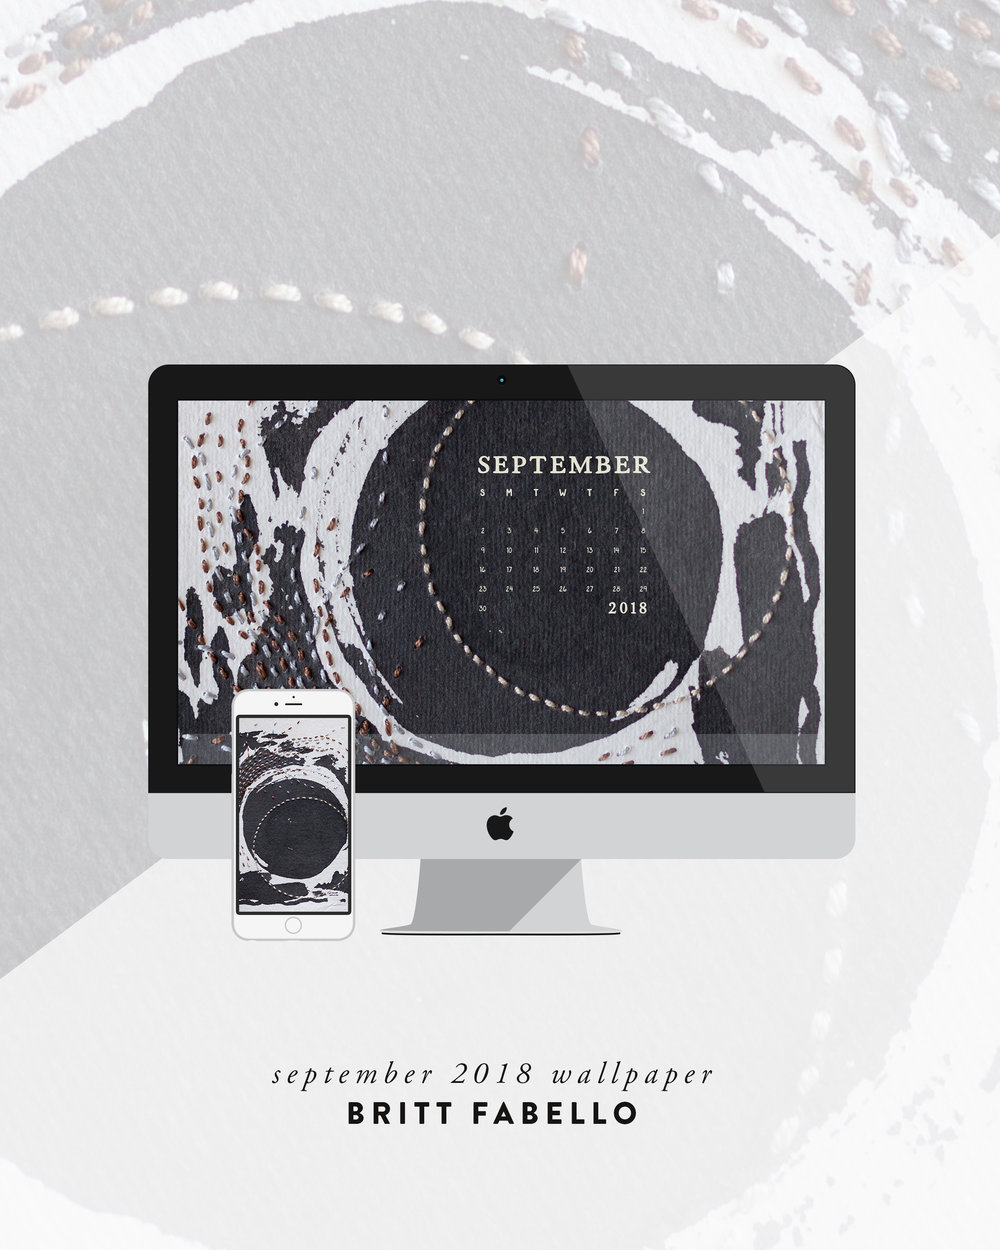 Wallpaper: September 2018 Calendar & Art | Computer & Phone | Britt Fabello